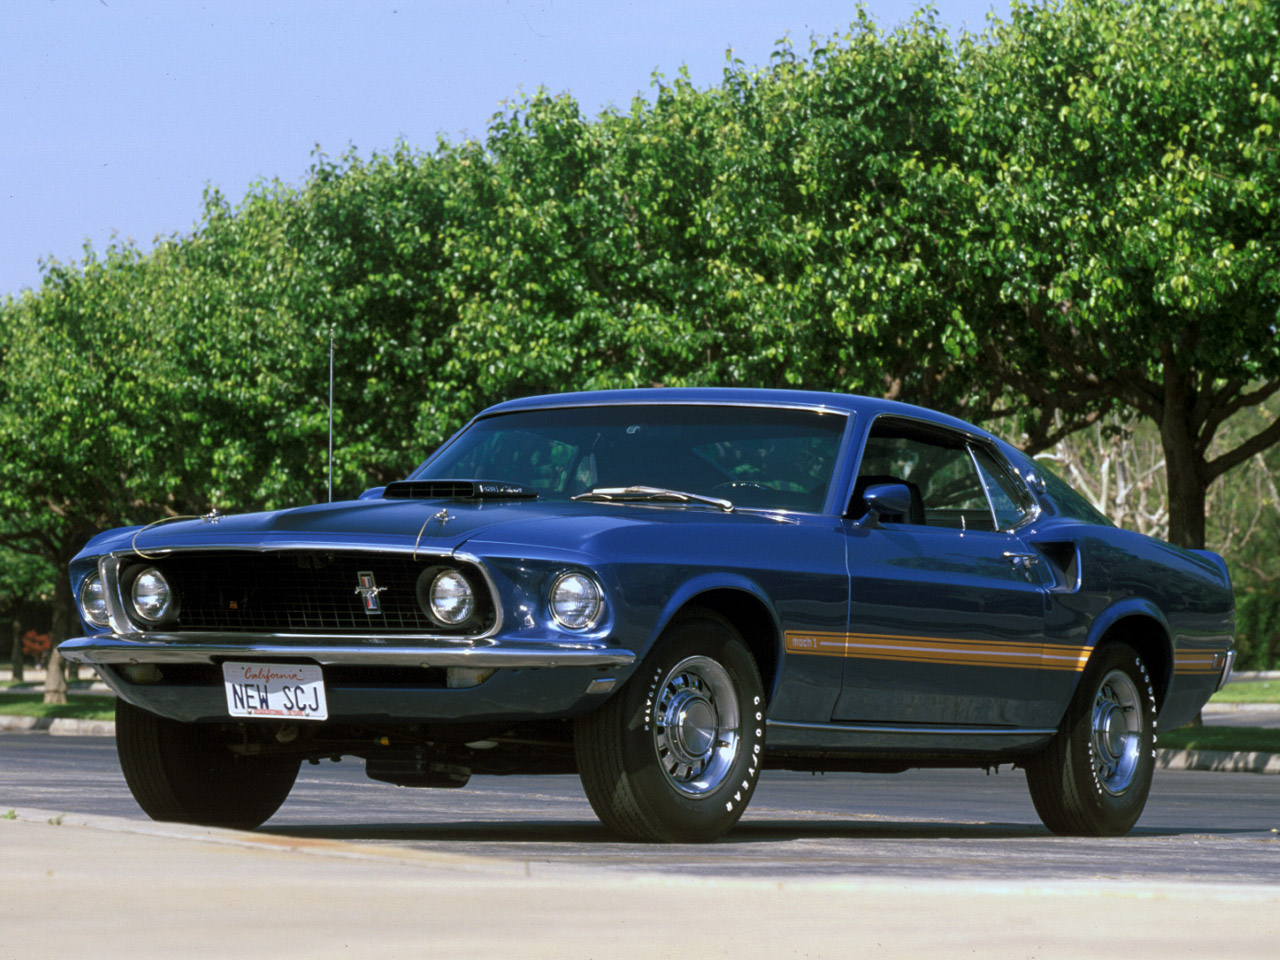 1969 ford mustang mach 1 pictures page 1 fast autos net image